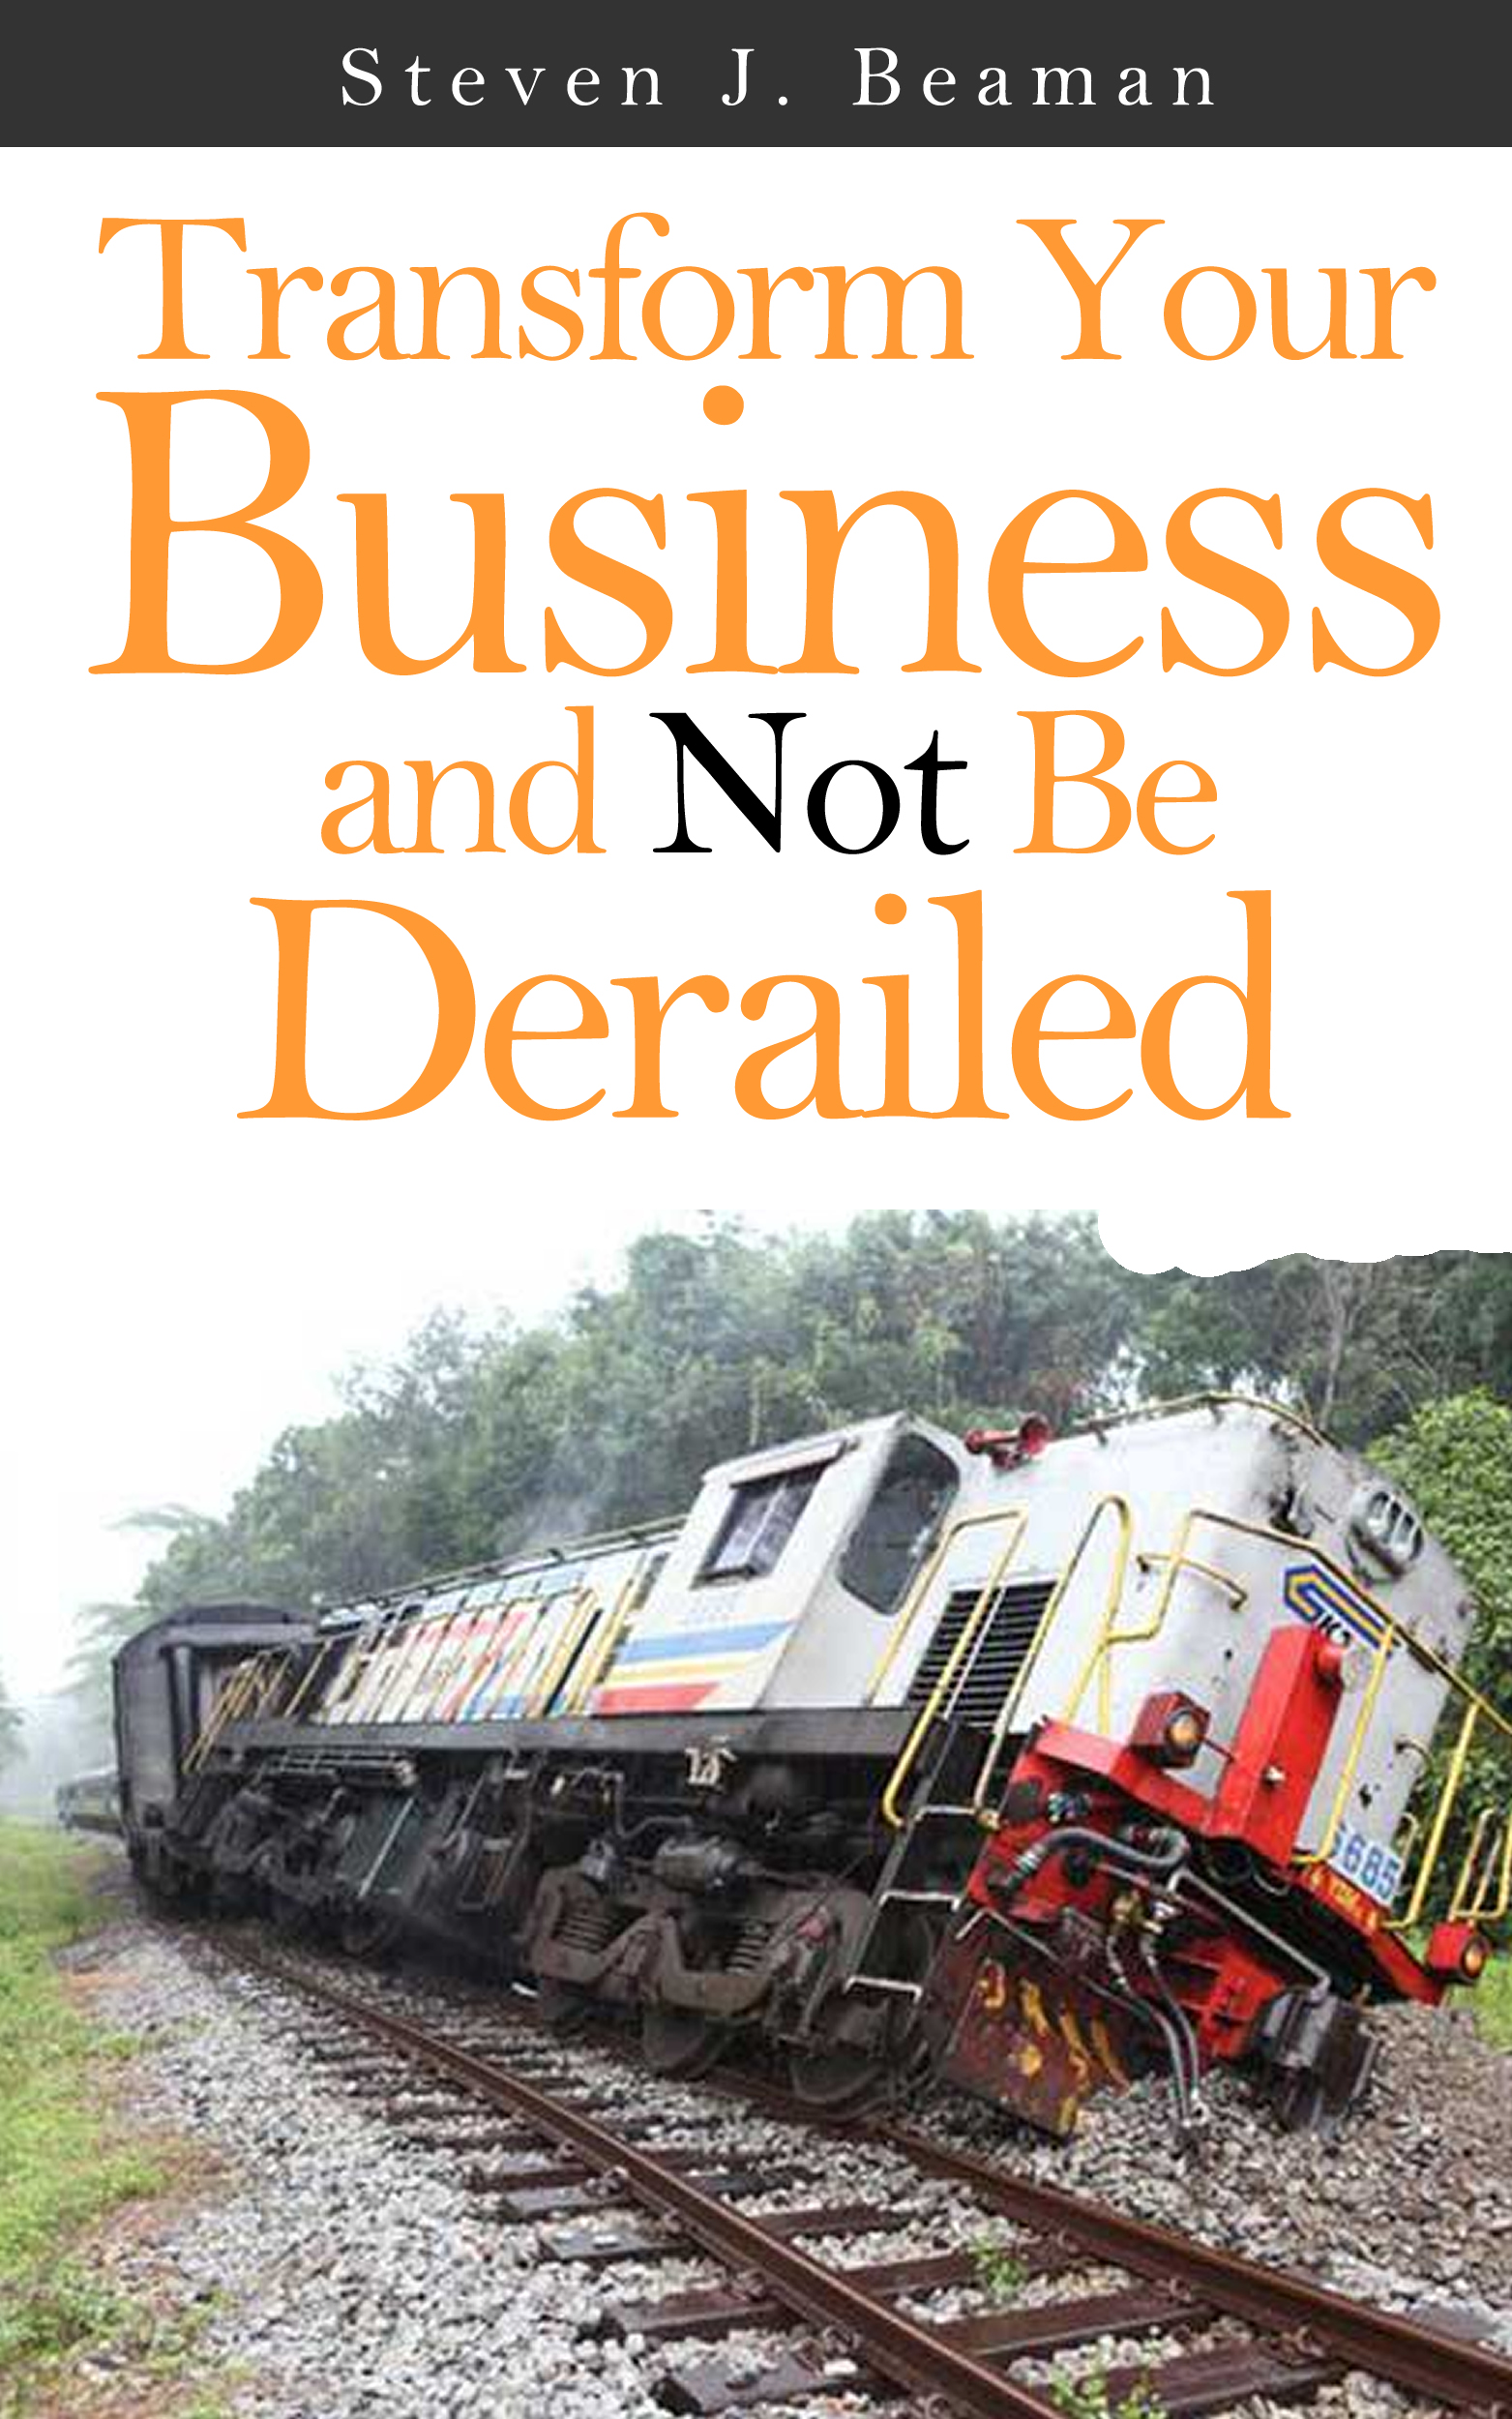 How to Transform Your Business and Not be Derailed